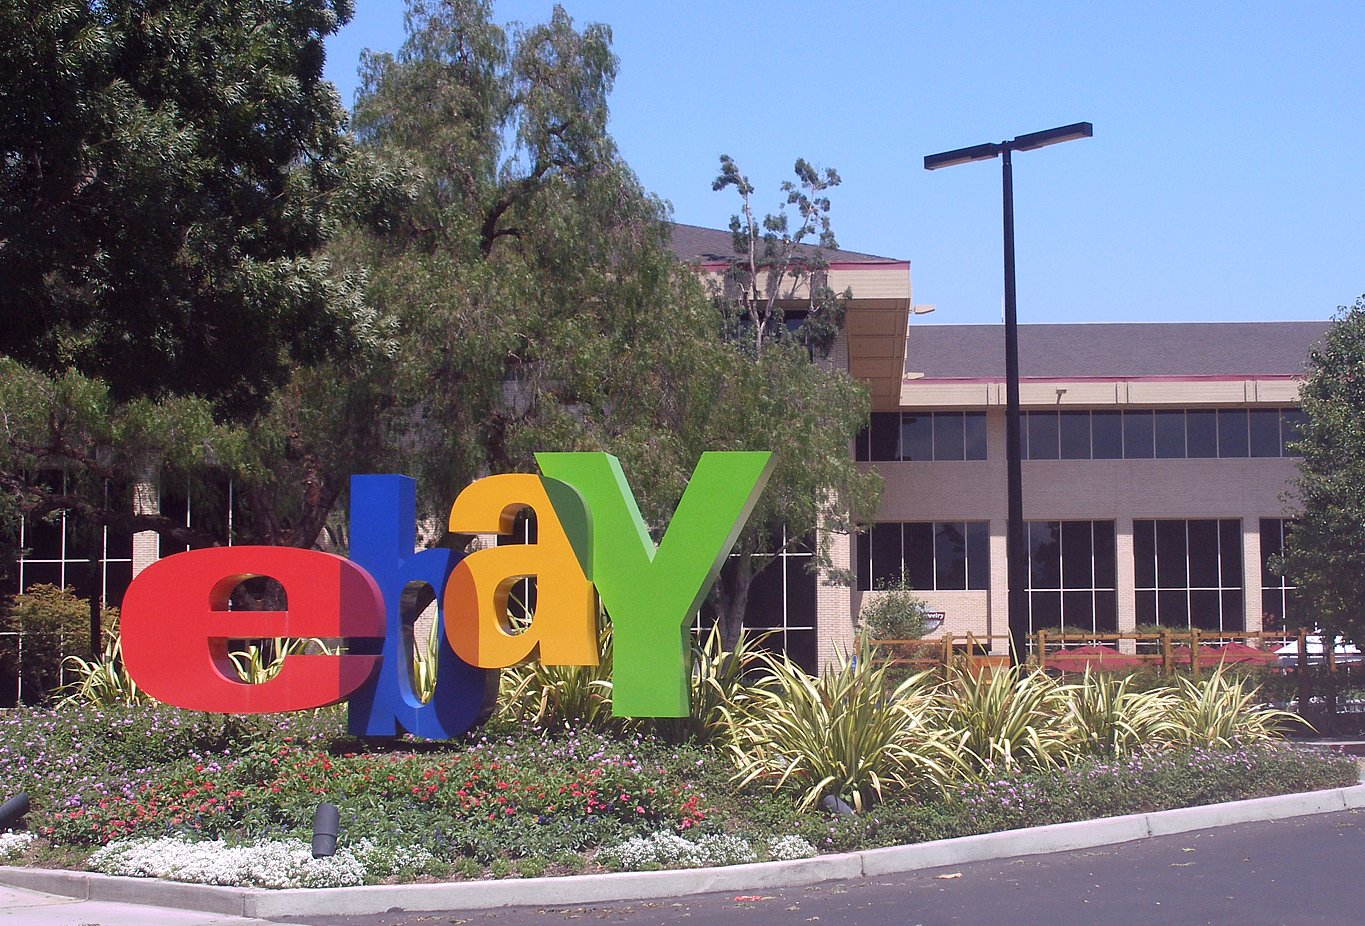 eBay acquires German payment firm BillSAFE to add purchase-on-invoice option to PayPal